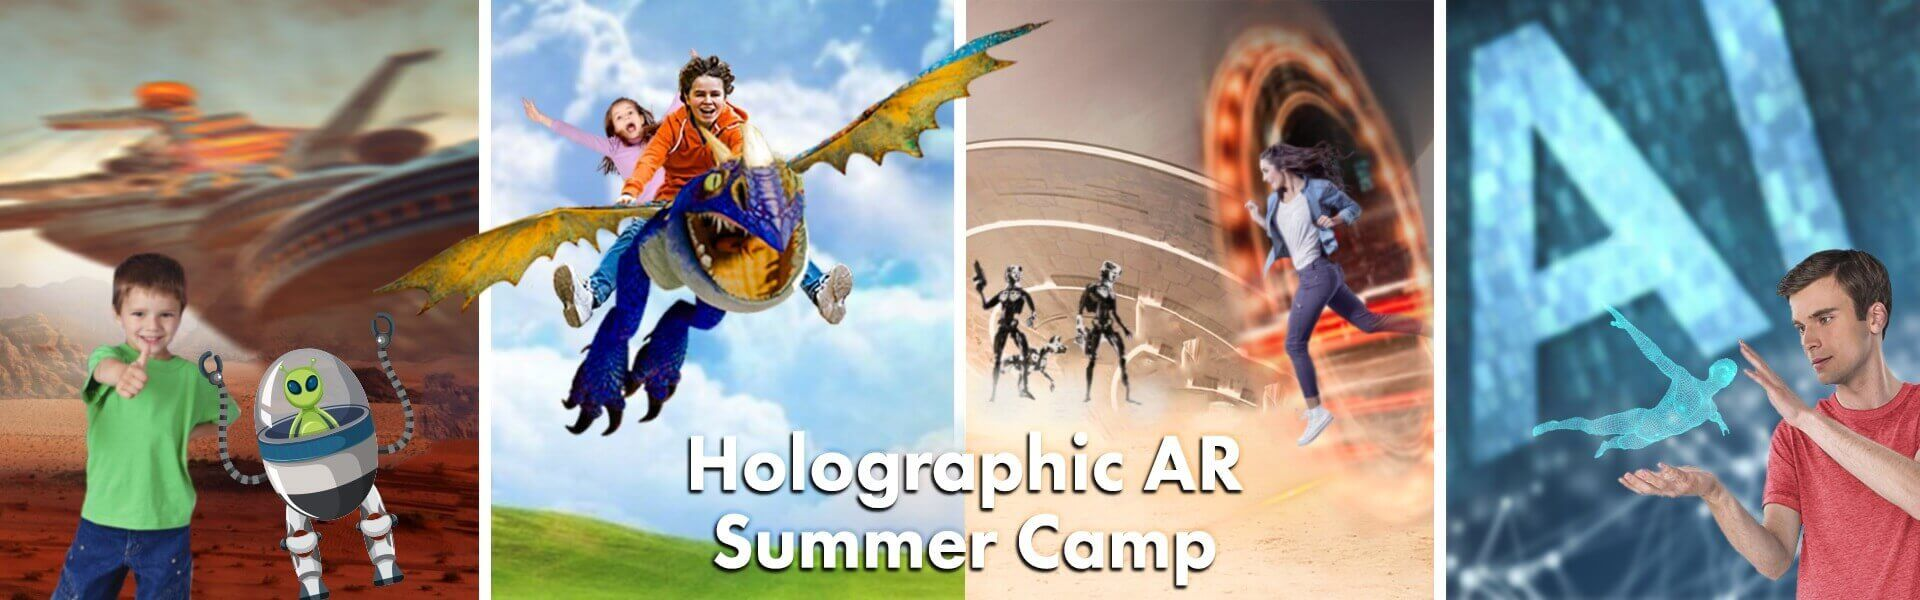 Holographic AR Summer Camp 2020